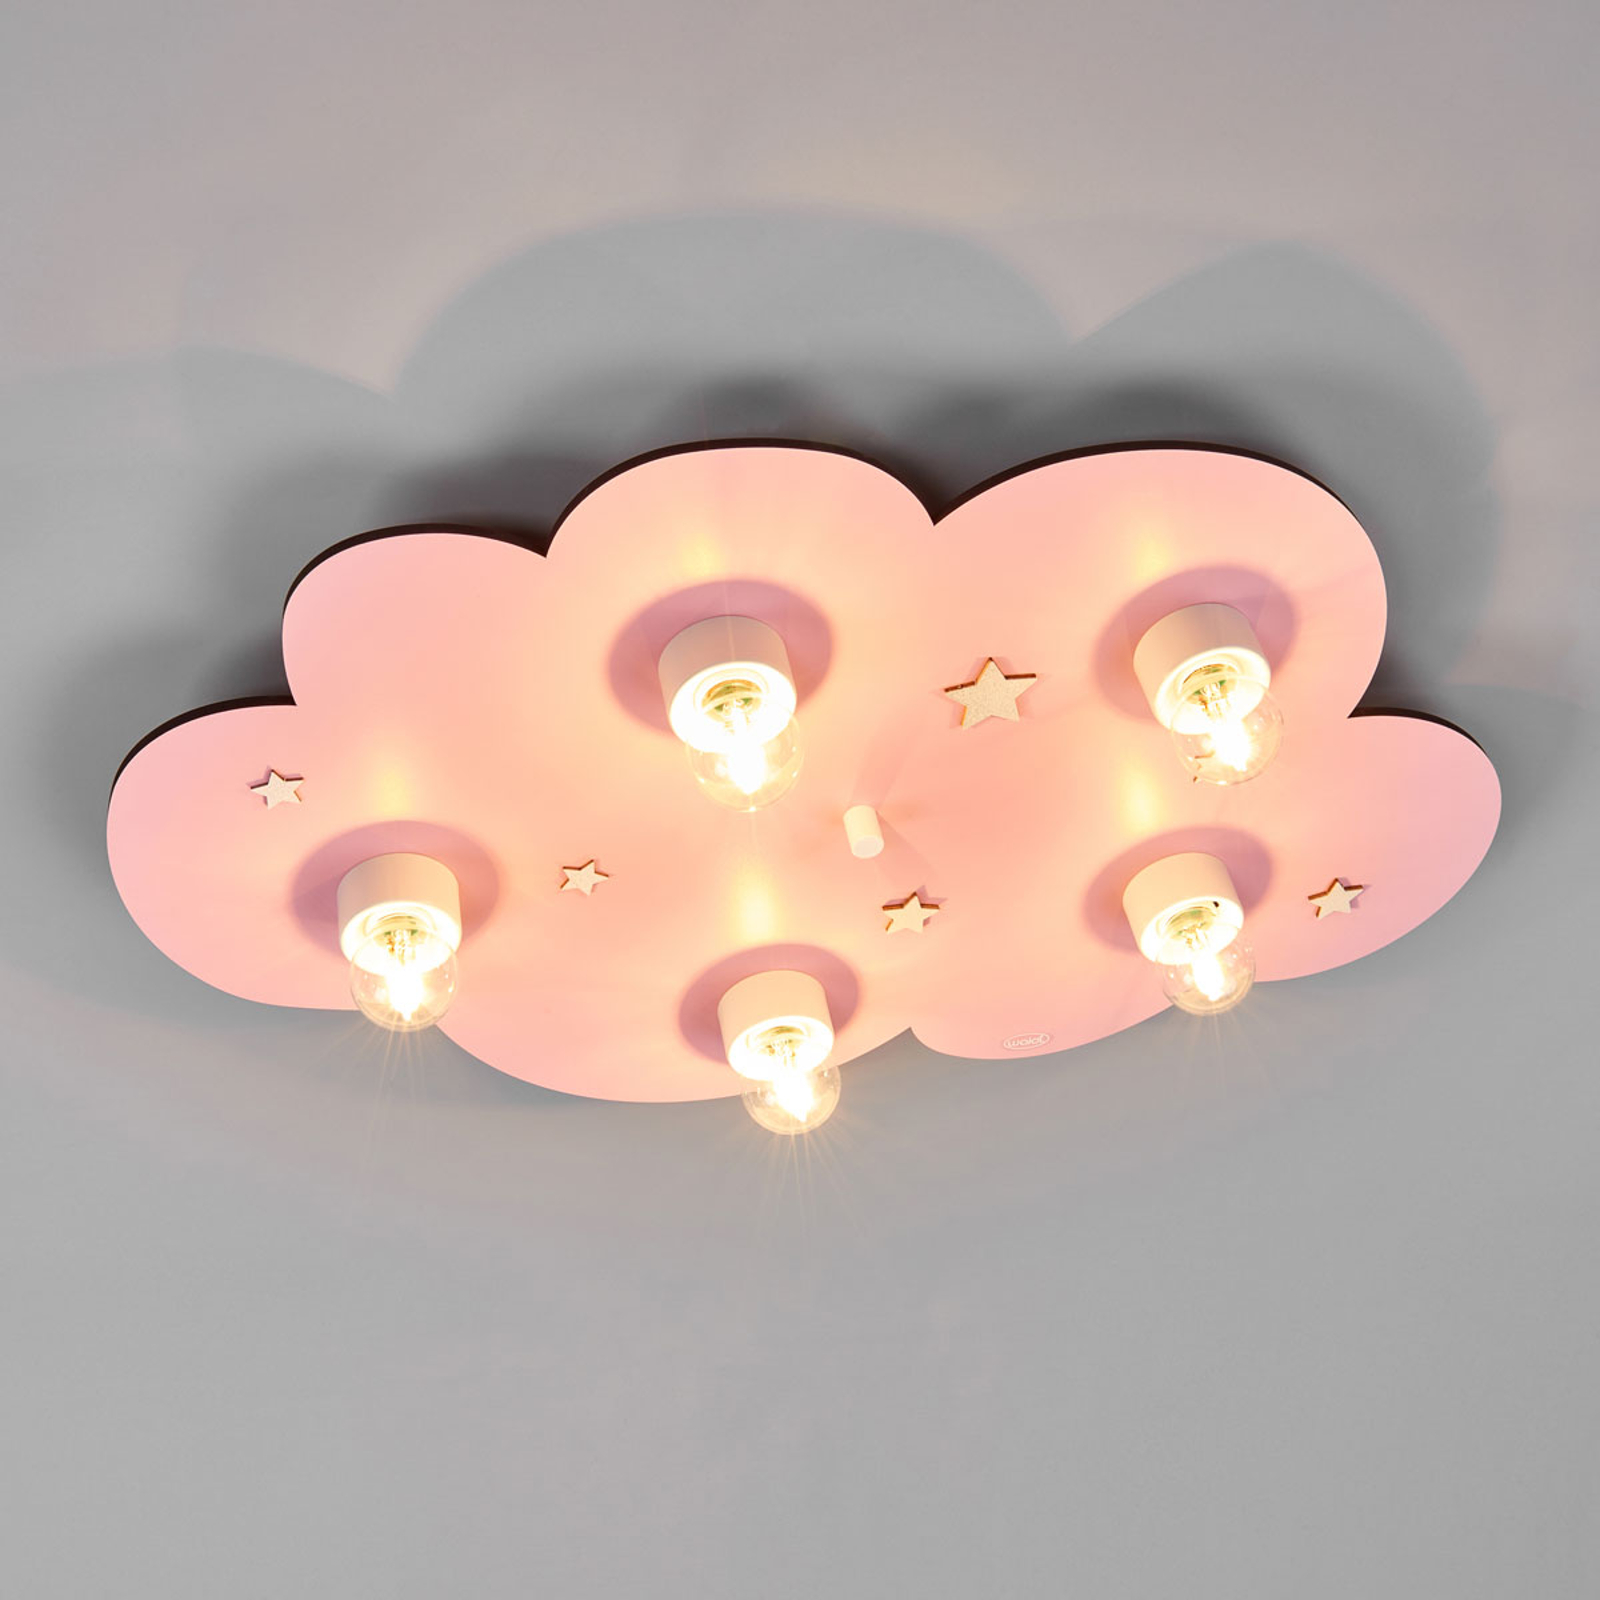 Dreamy pink Cloud children's ceiling light_9606068_1